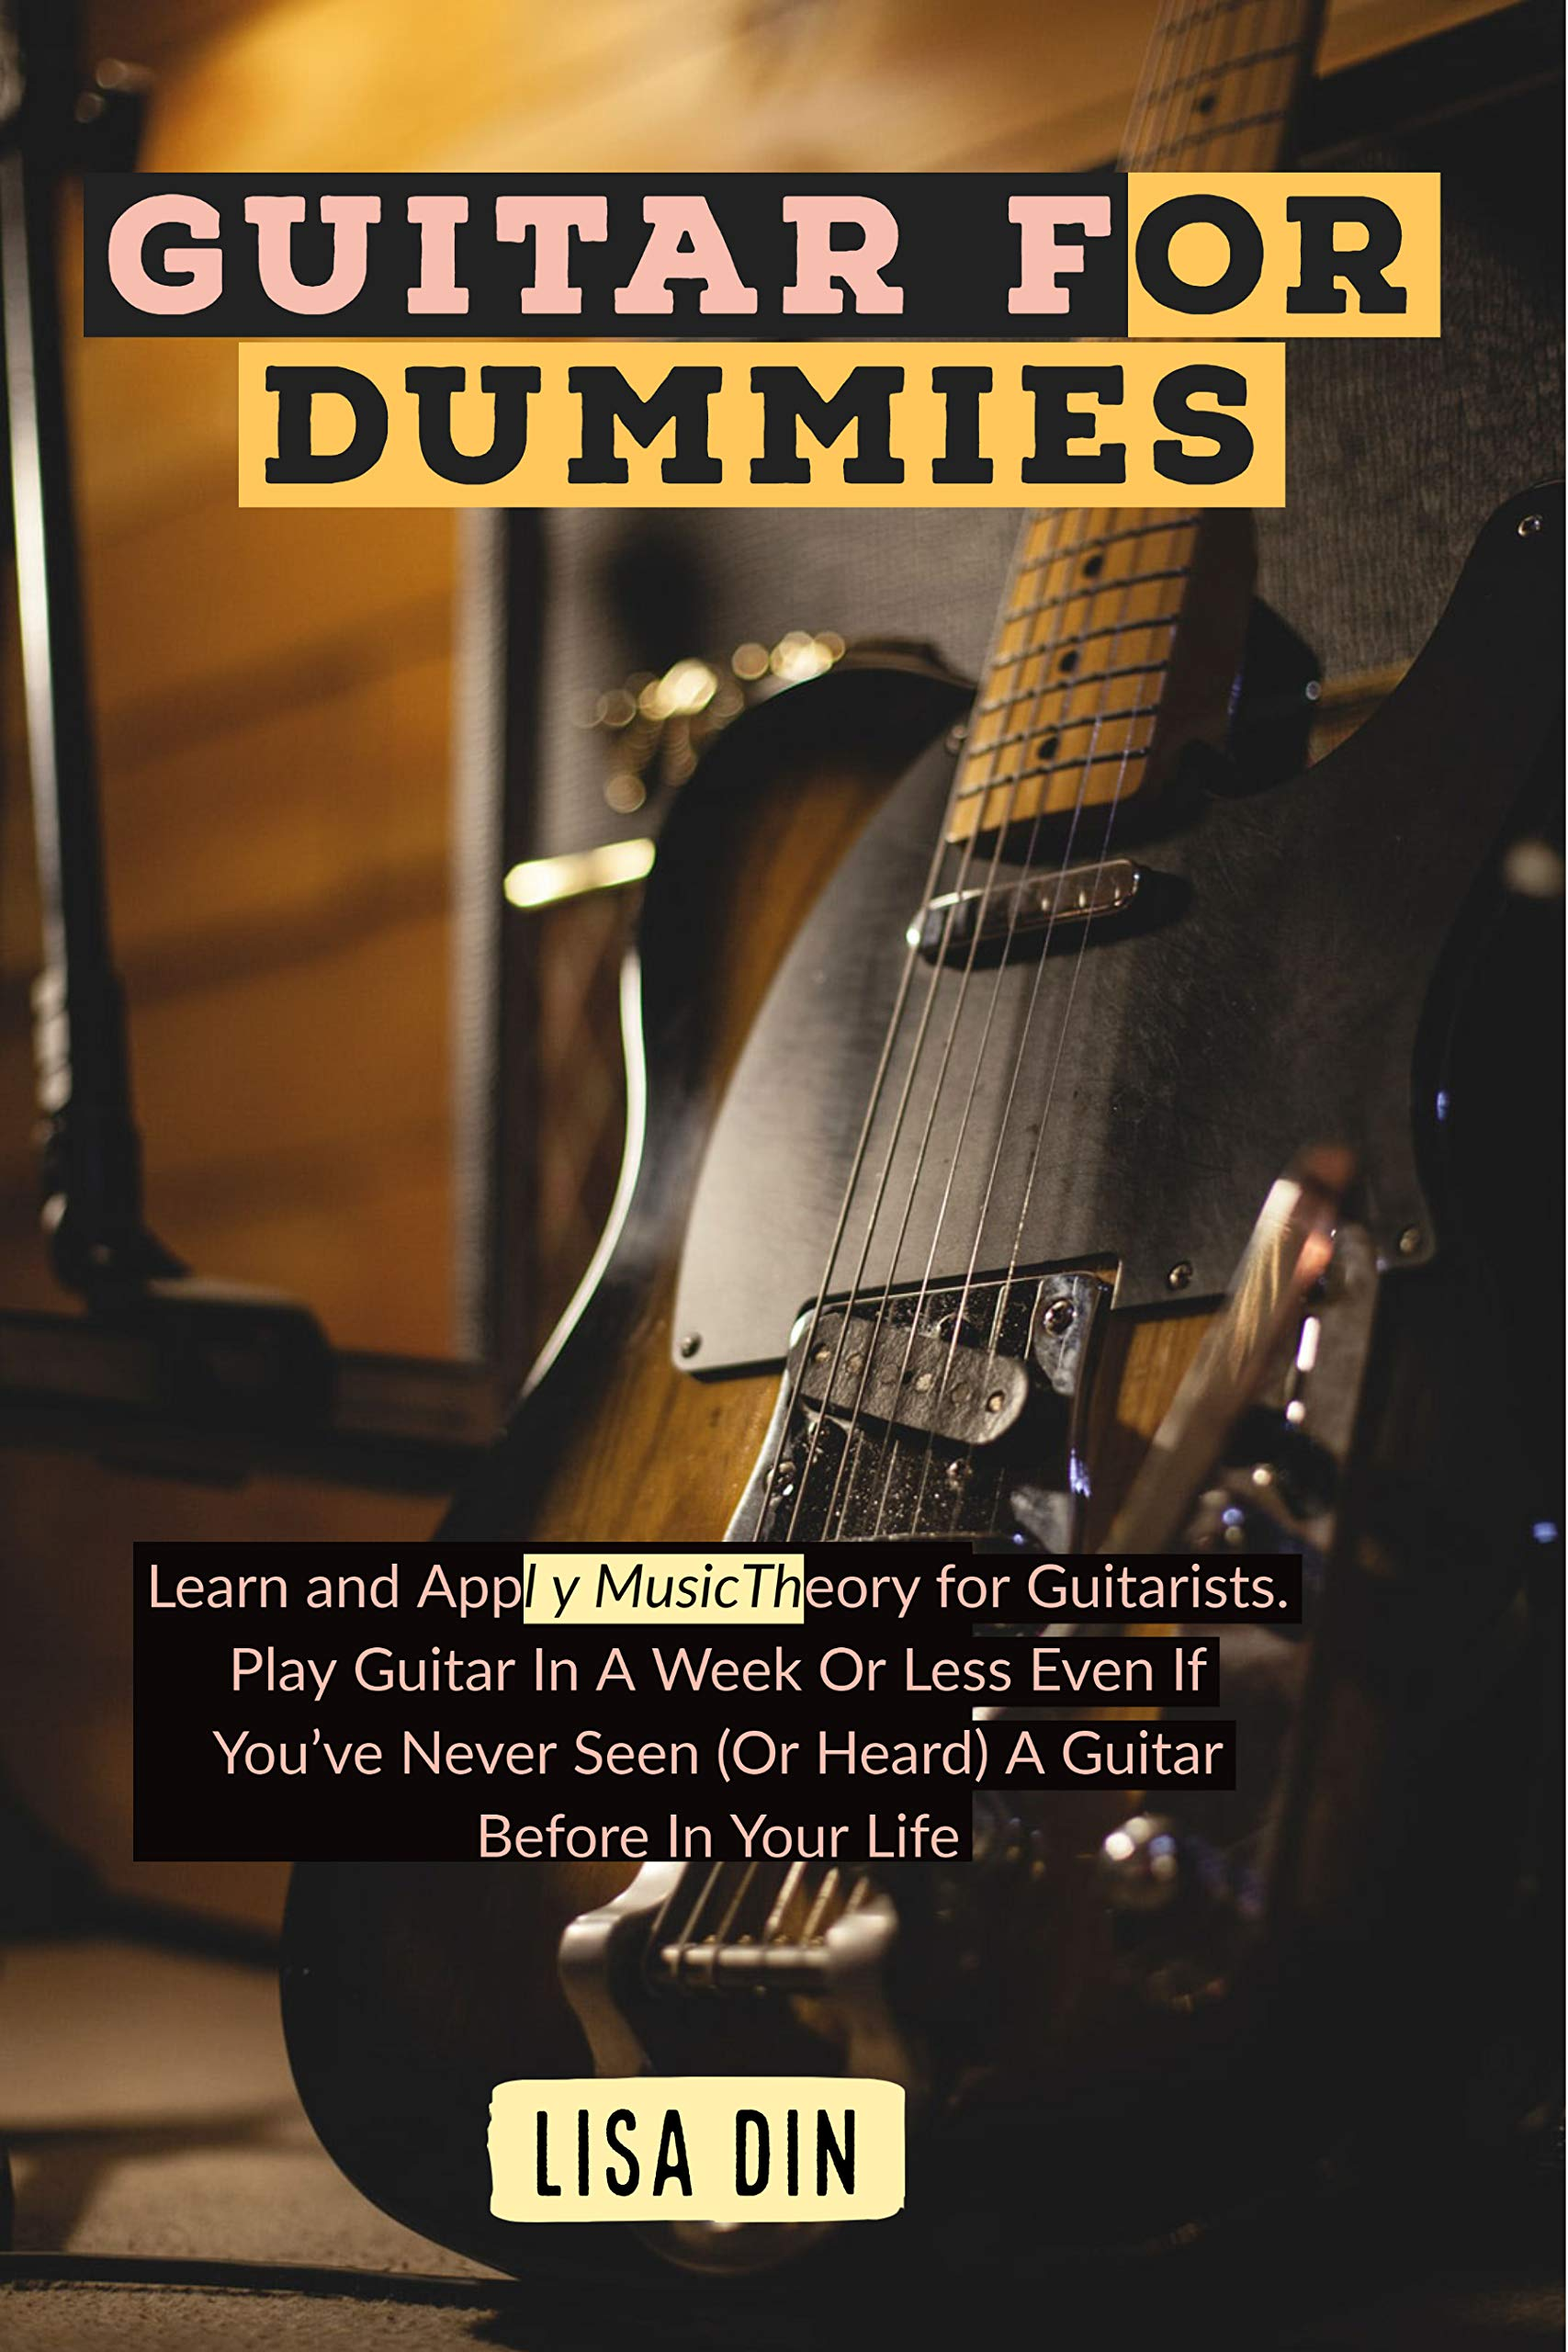 Guitar for dummies: Learn and Apply Music Theory for Guitarists. Play Guitar In A Week Or Less Even If You've Never Seen (Or Heard) A Guitar Before In Your Life